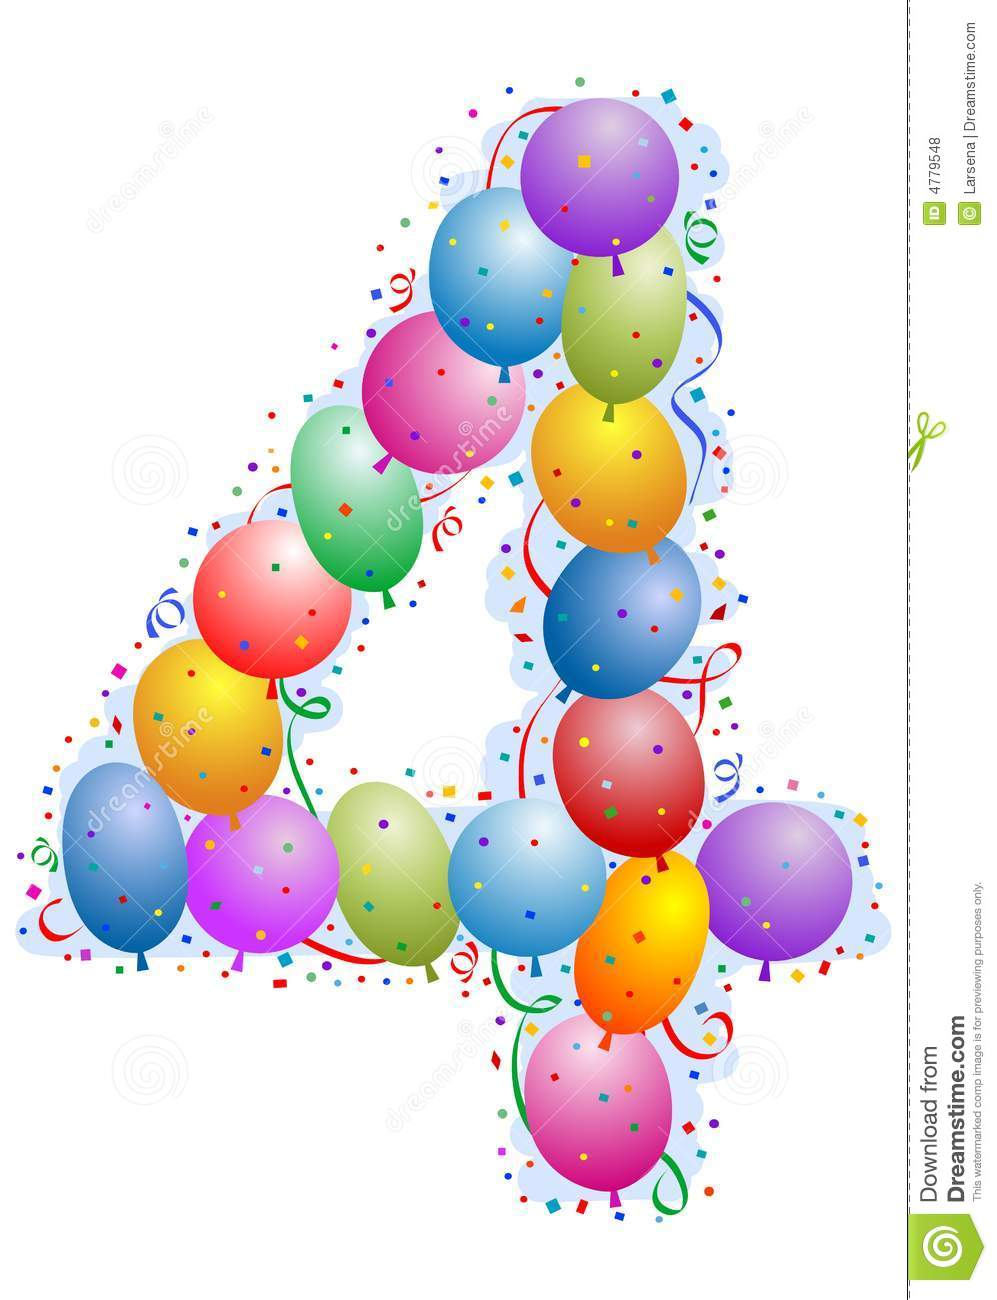 Party Balloons And Confetti   Clipart Panda   Free Clipart Images